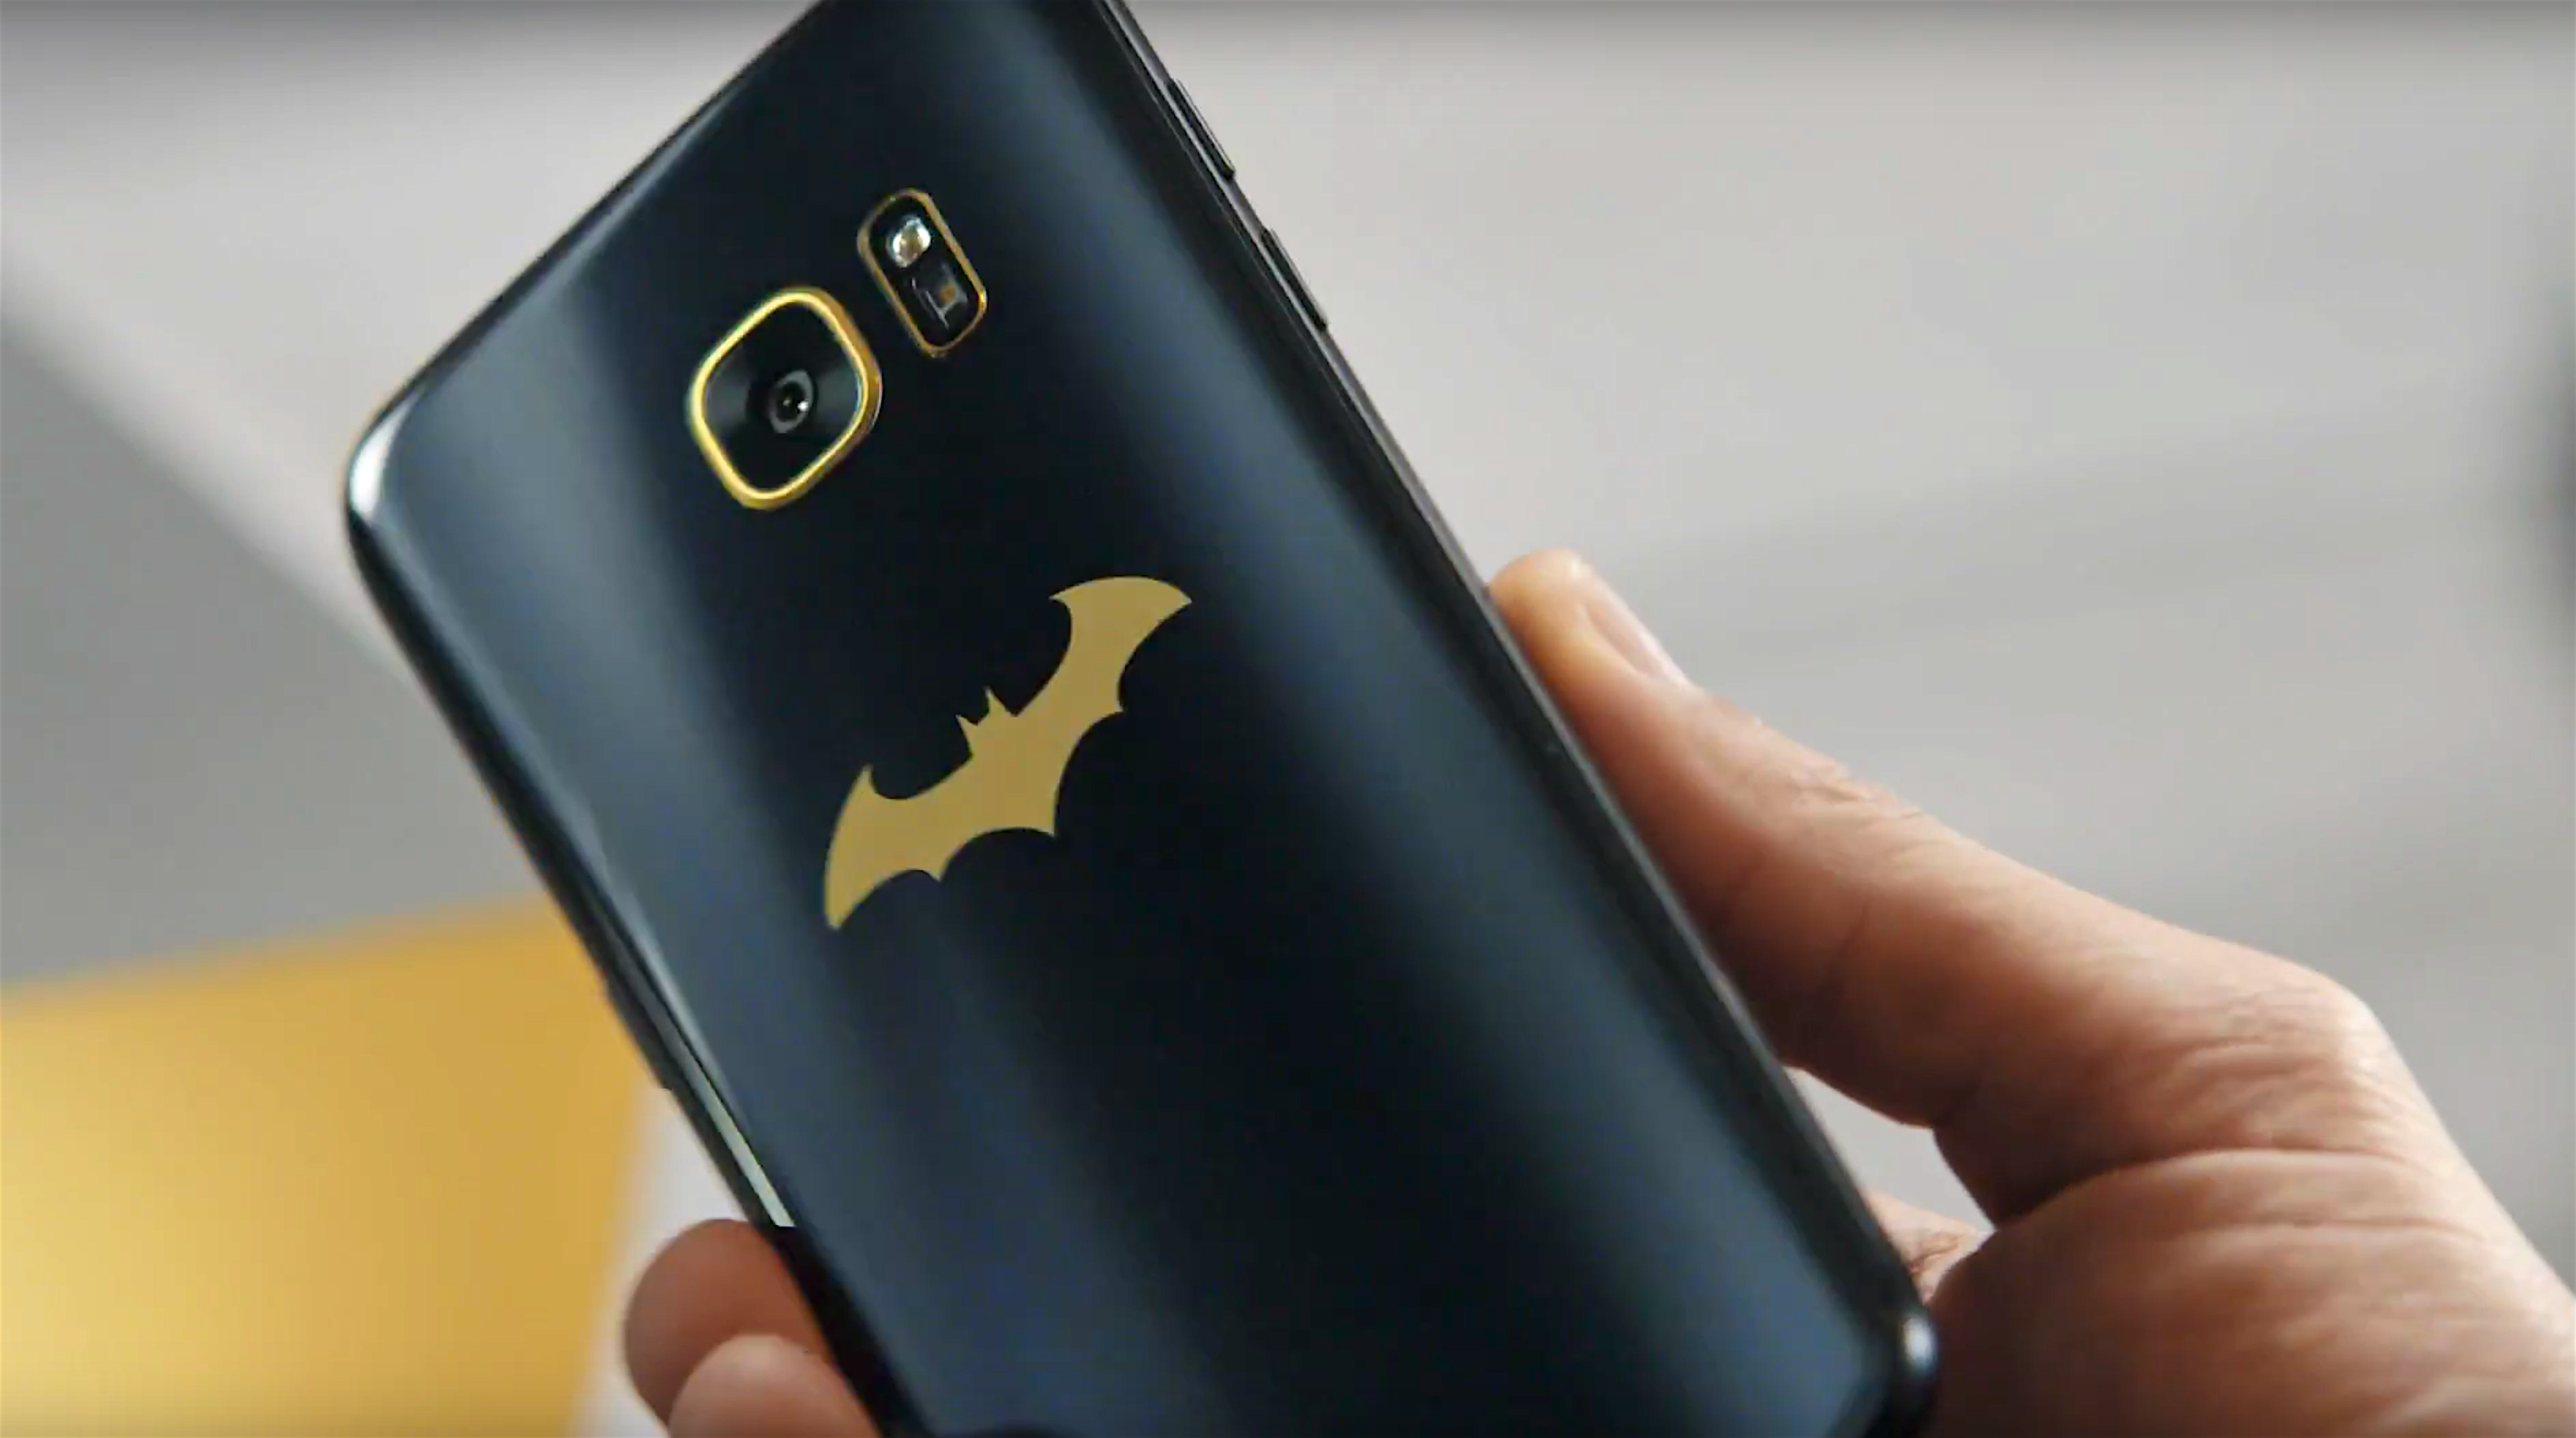 Official Samsung Galaxy S7 Edge Injustice Edition unboxing